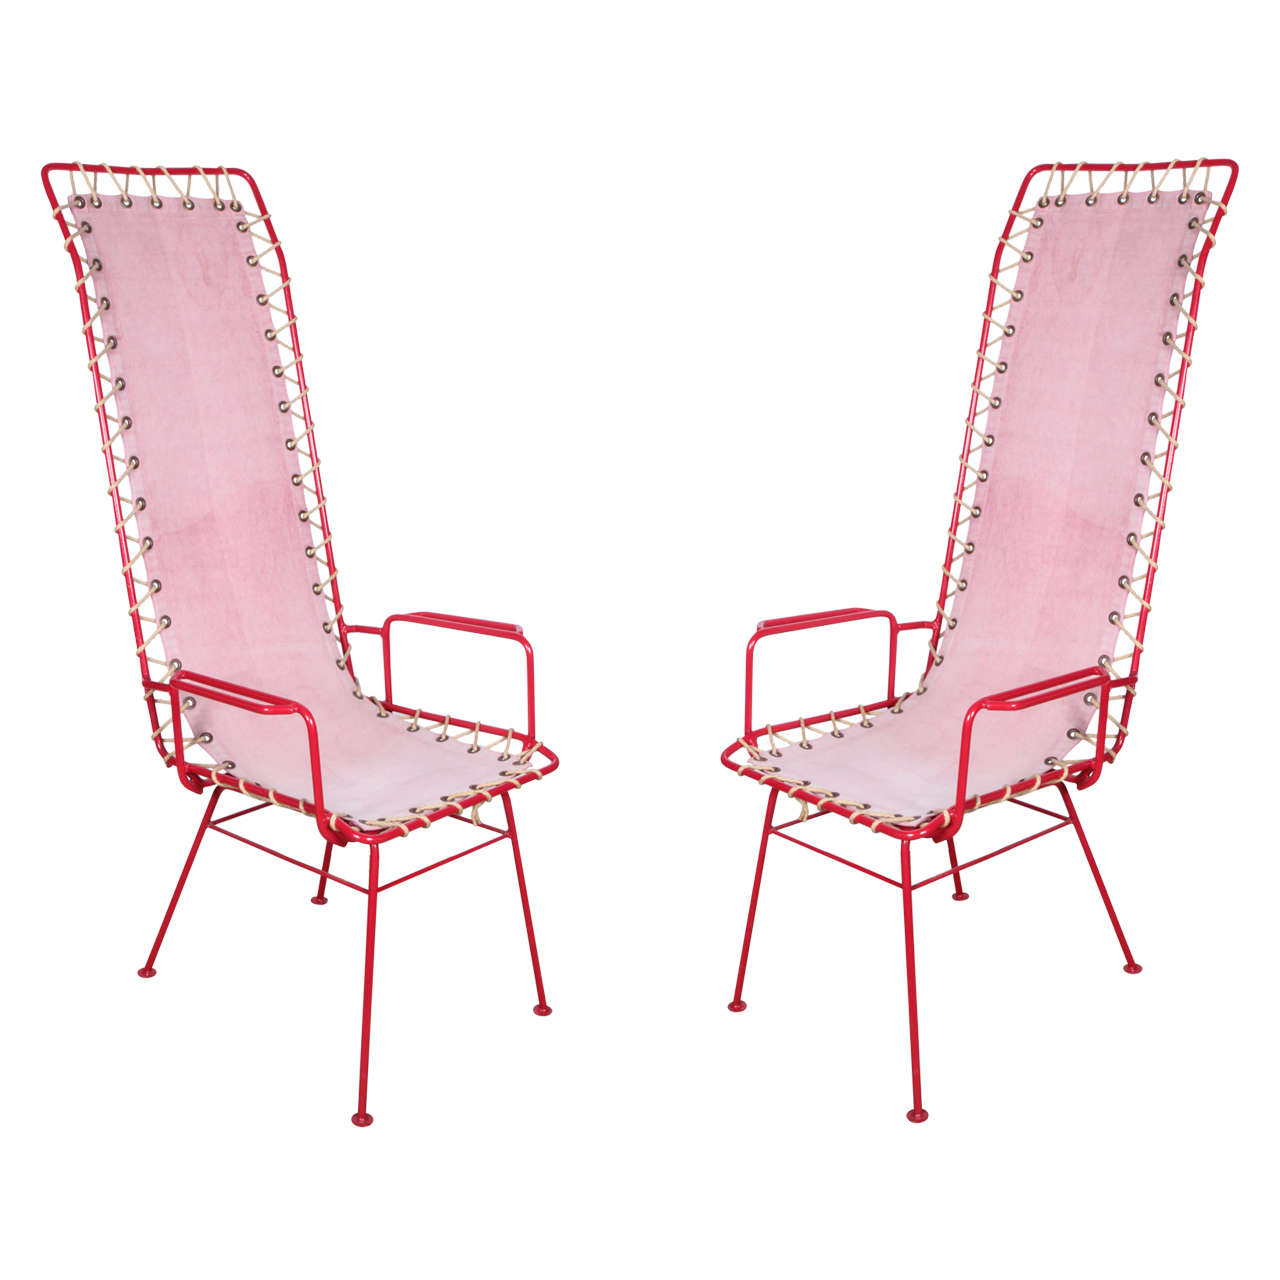 Pair Of French Vintage Pink And Red Chairs For Sale At 1stdibs